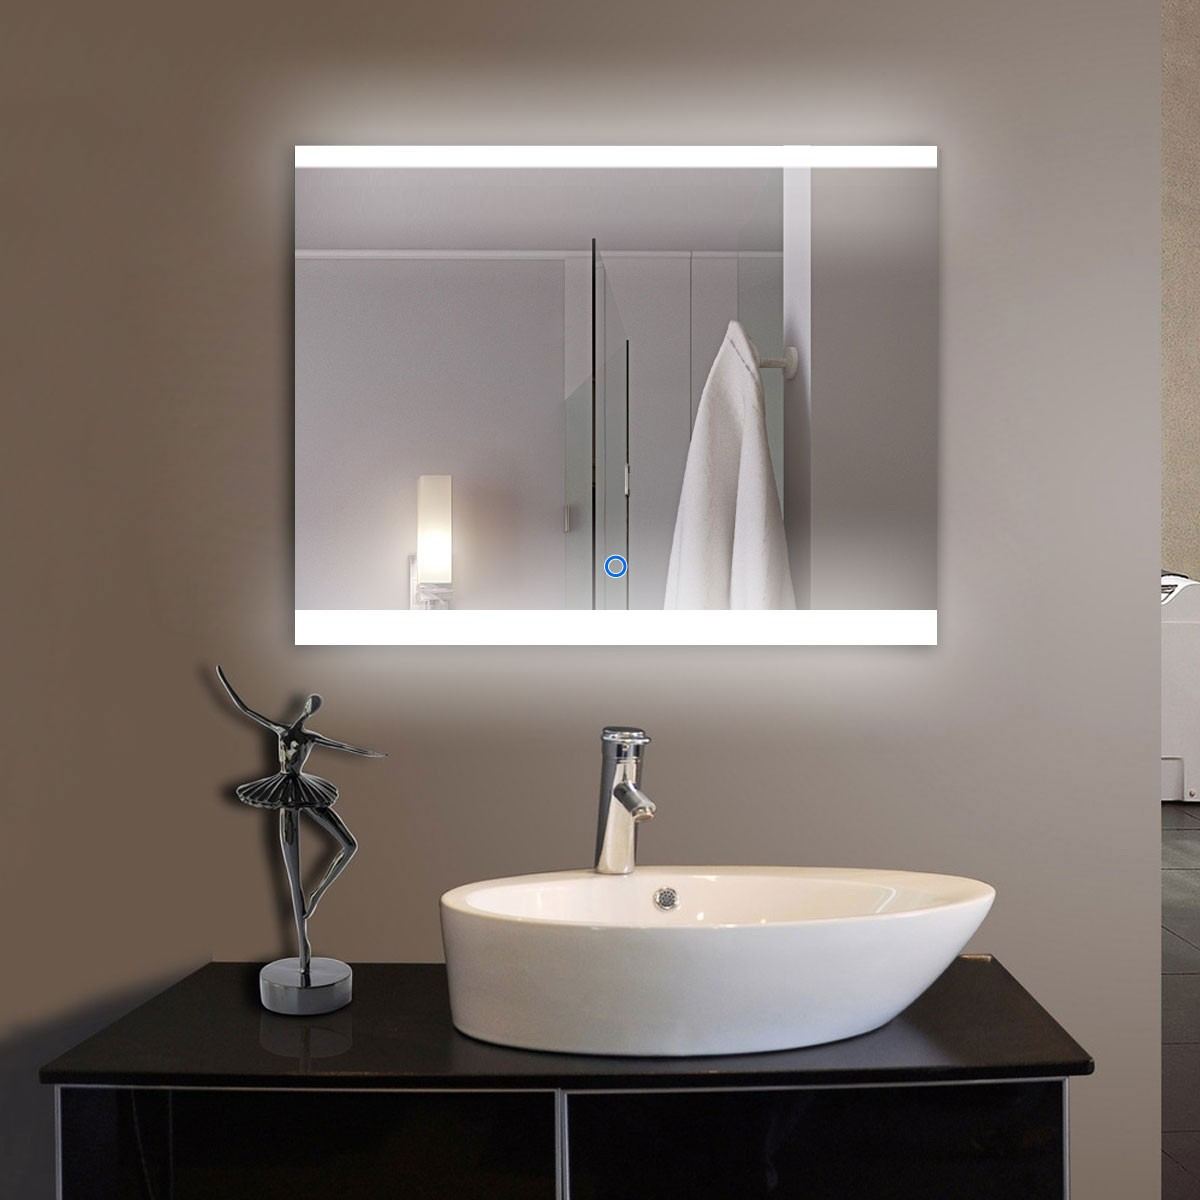 36 x 28 In Horizontal LED Bathroom Mirror with Touch Button (DK-OD-CL056)